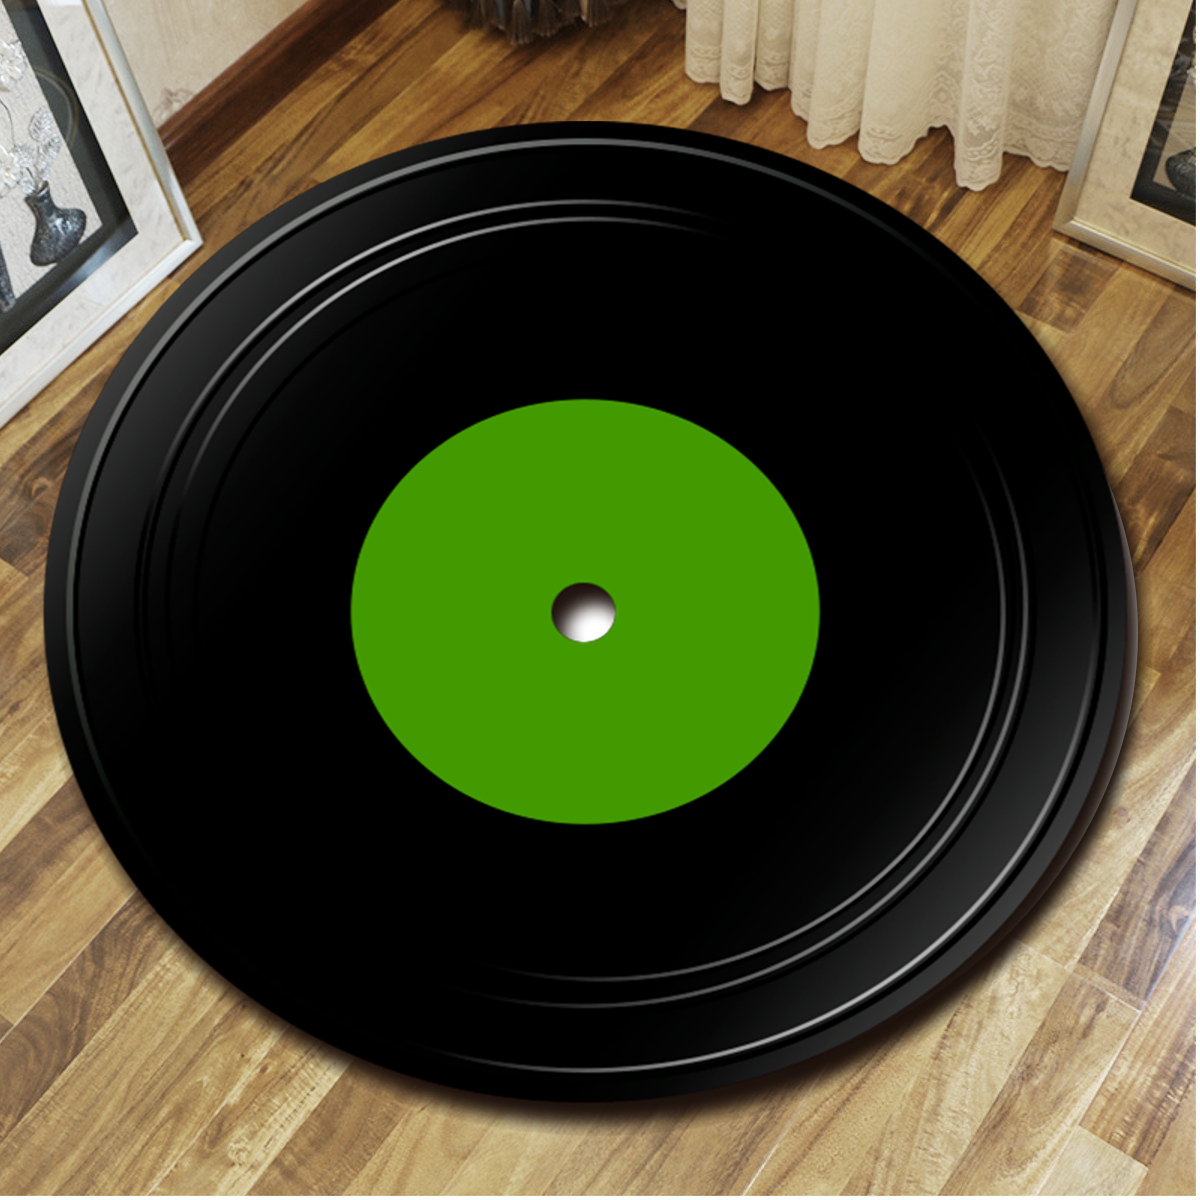 Rugs Amp Carpets Fashions Vinyl Record Carpet Round Floor